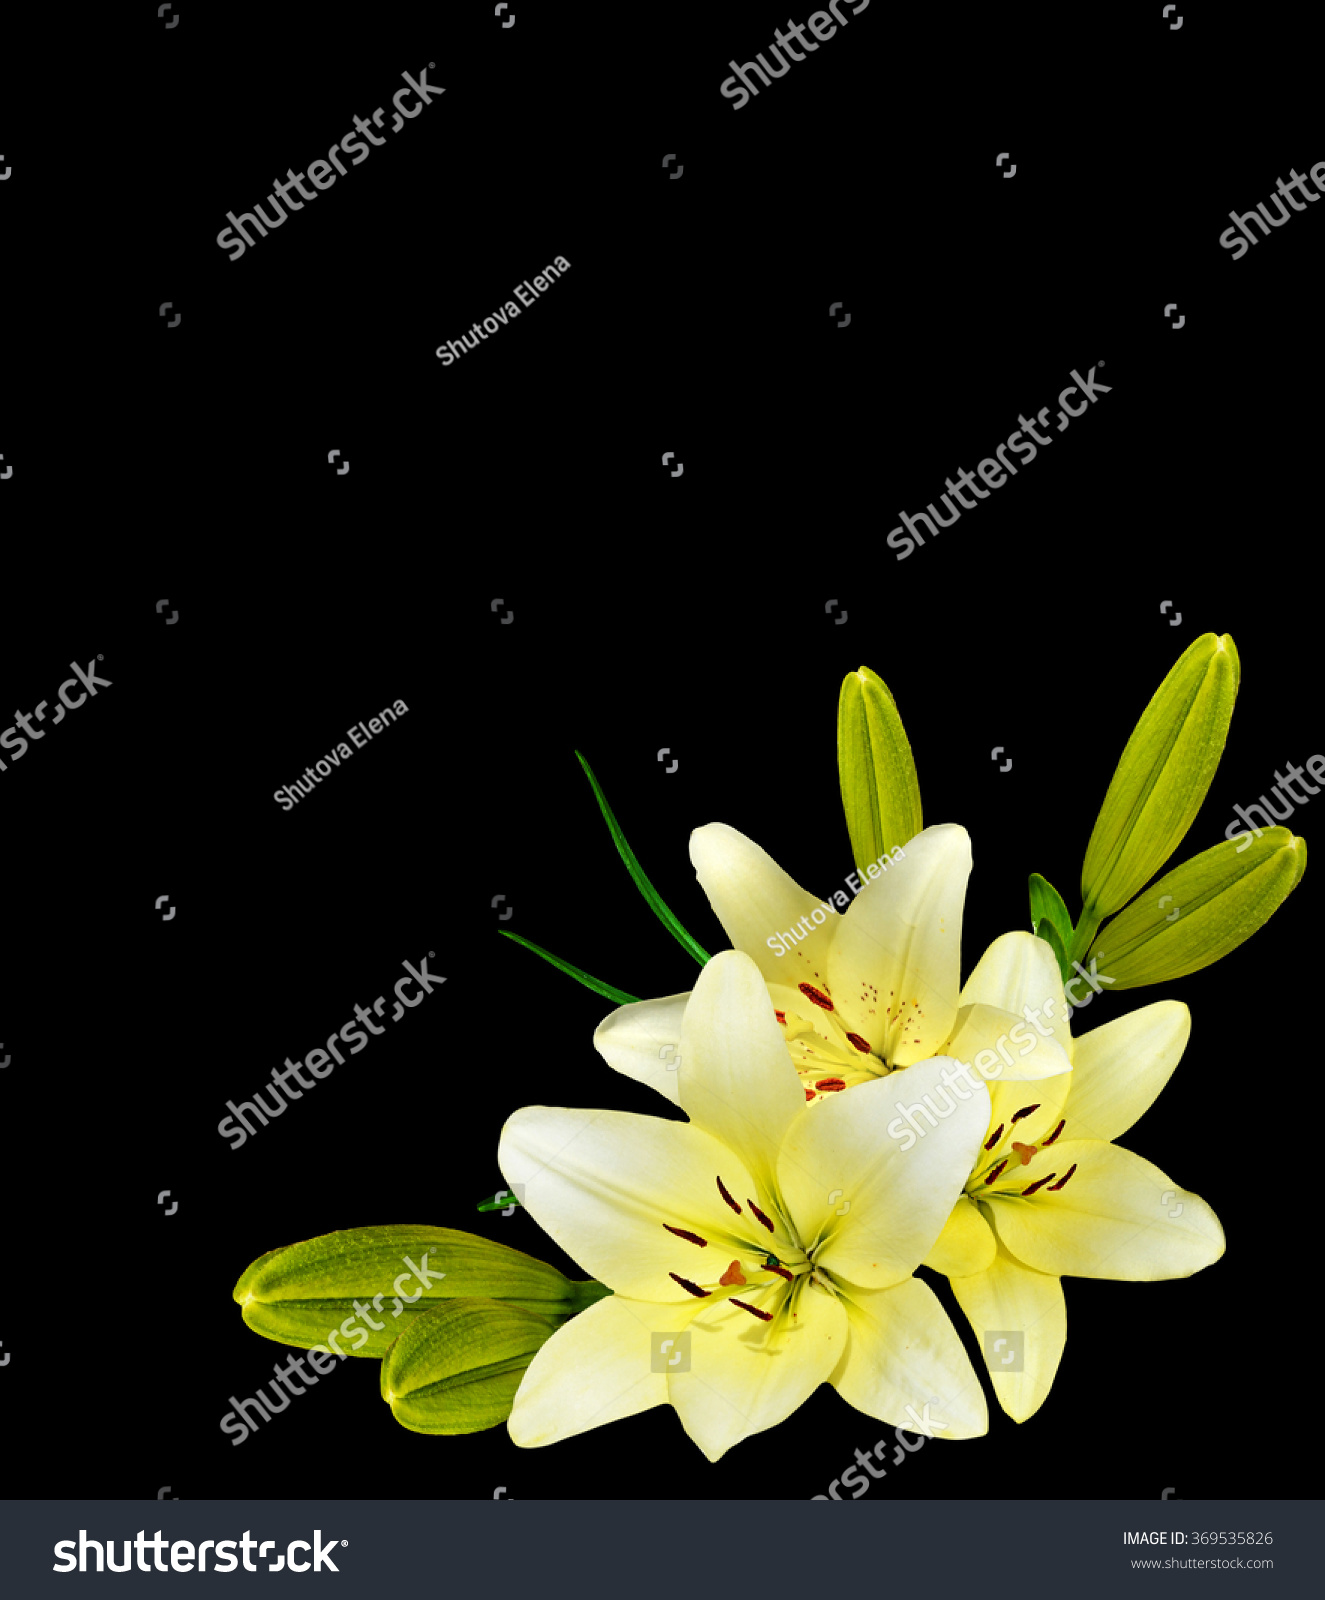 White Lily Flower On Black Background Stock Photo Download Now